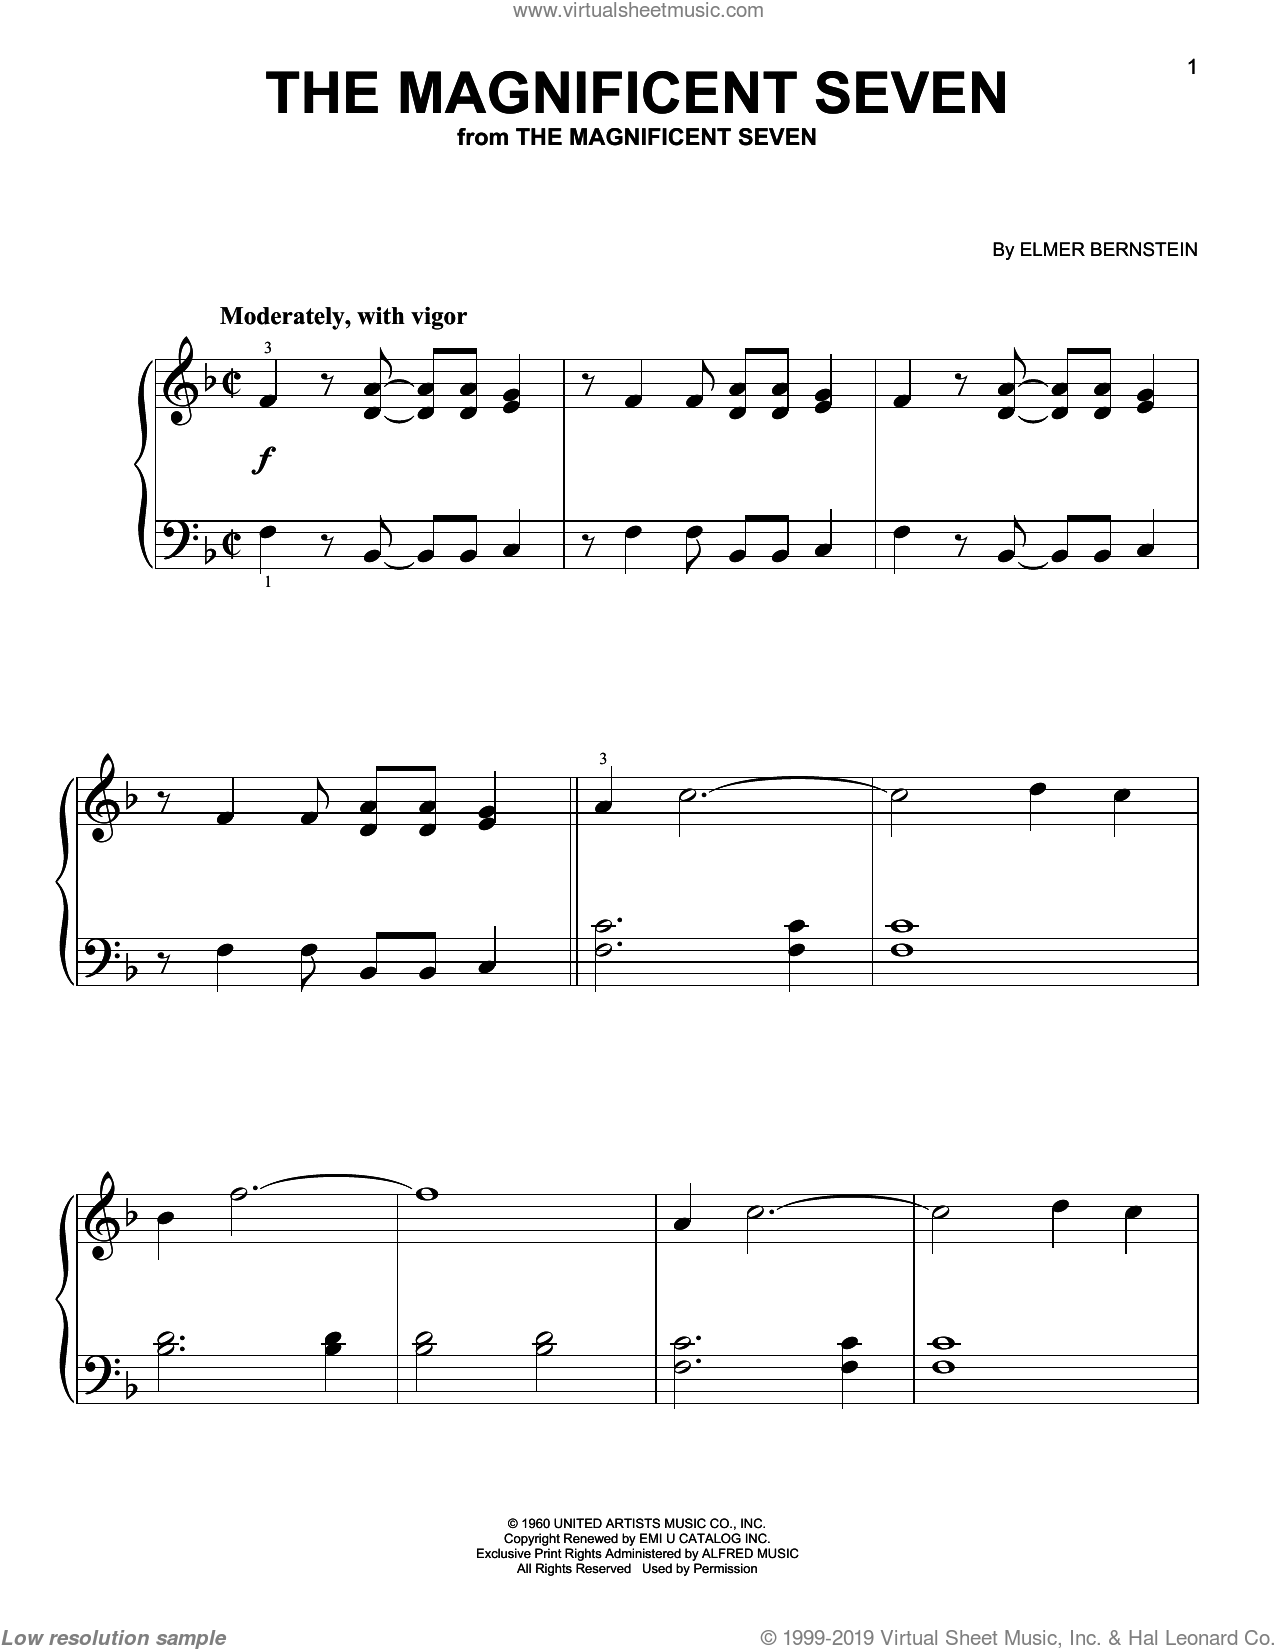 The Magnificent Seven sheet music for piano solo by Elmer Bernstein, classical score, beginner skill level